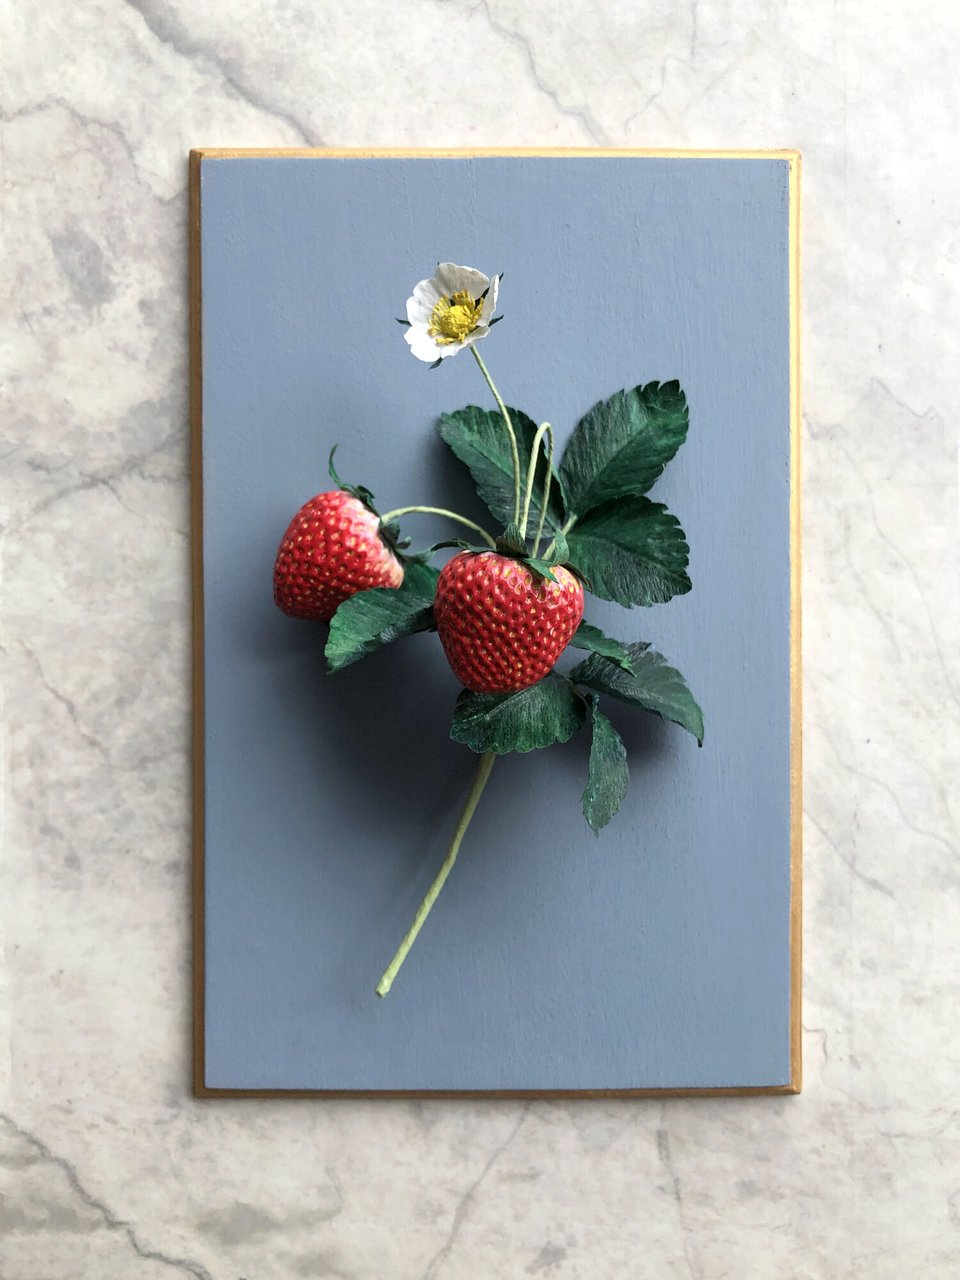 GOLDEN AGE BOTANICALS Strawberry with Blossom   Caught My Eye No.3